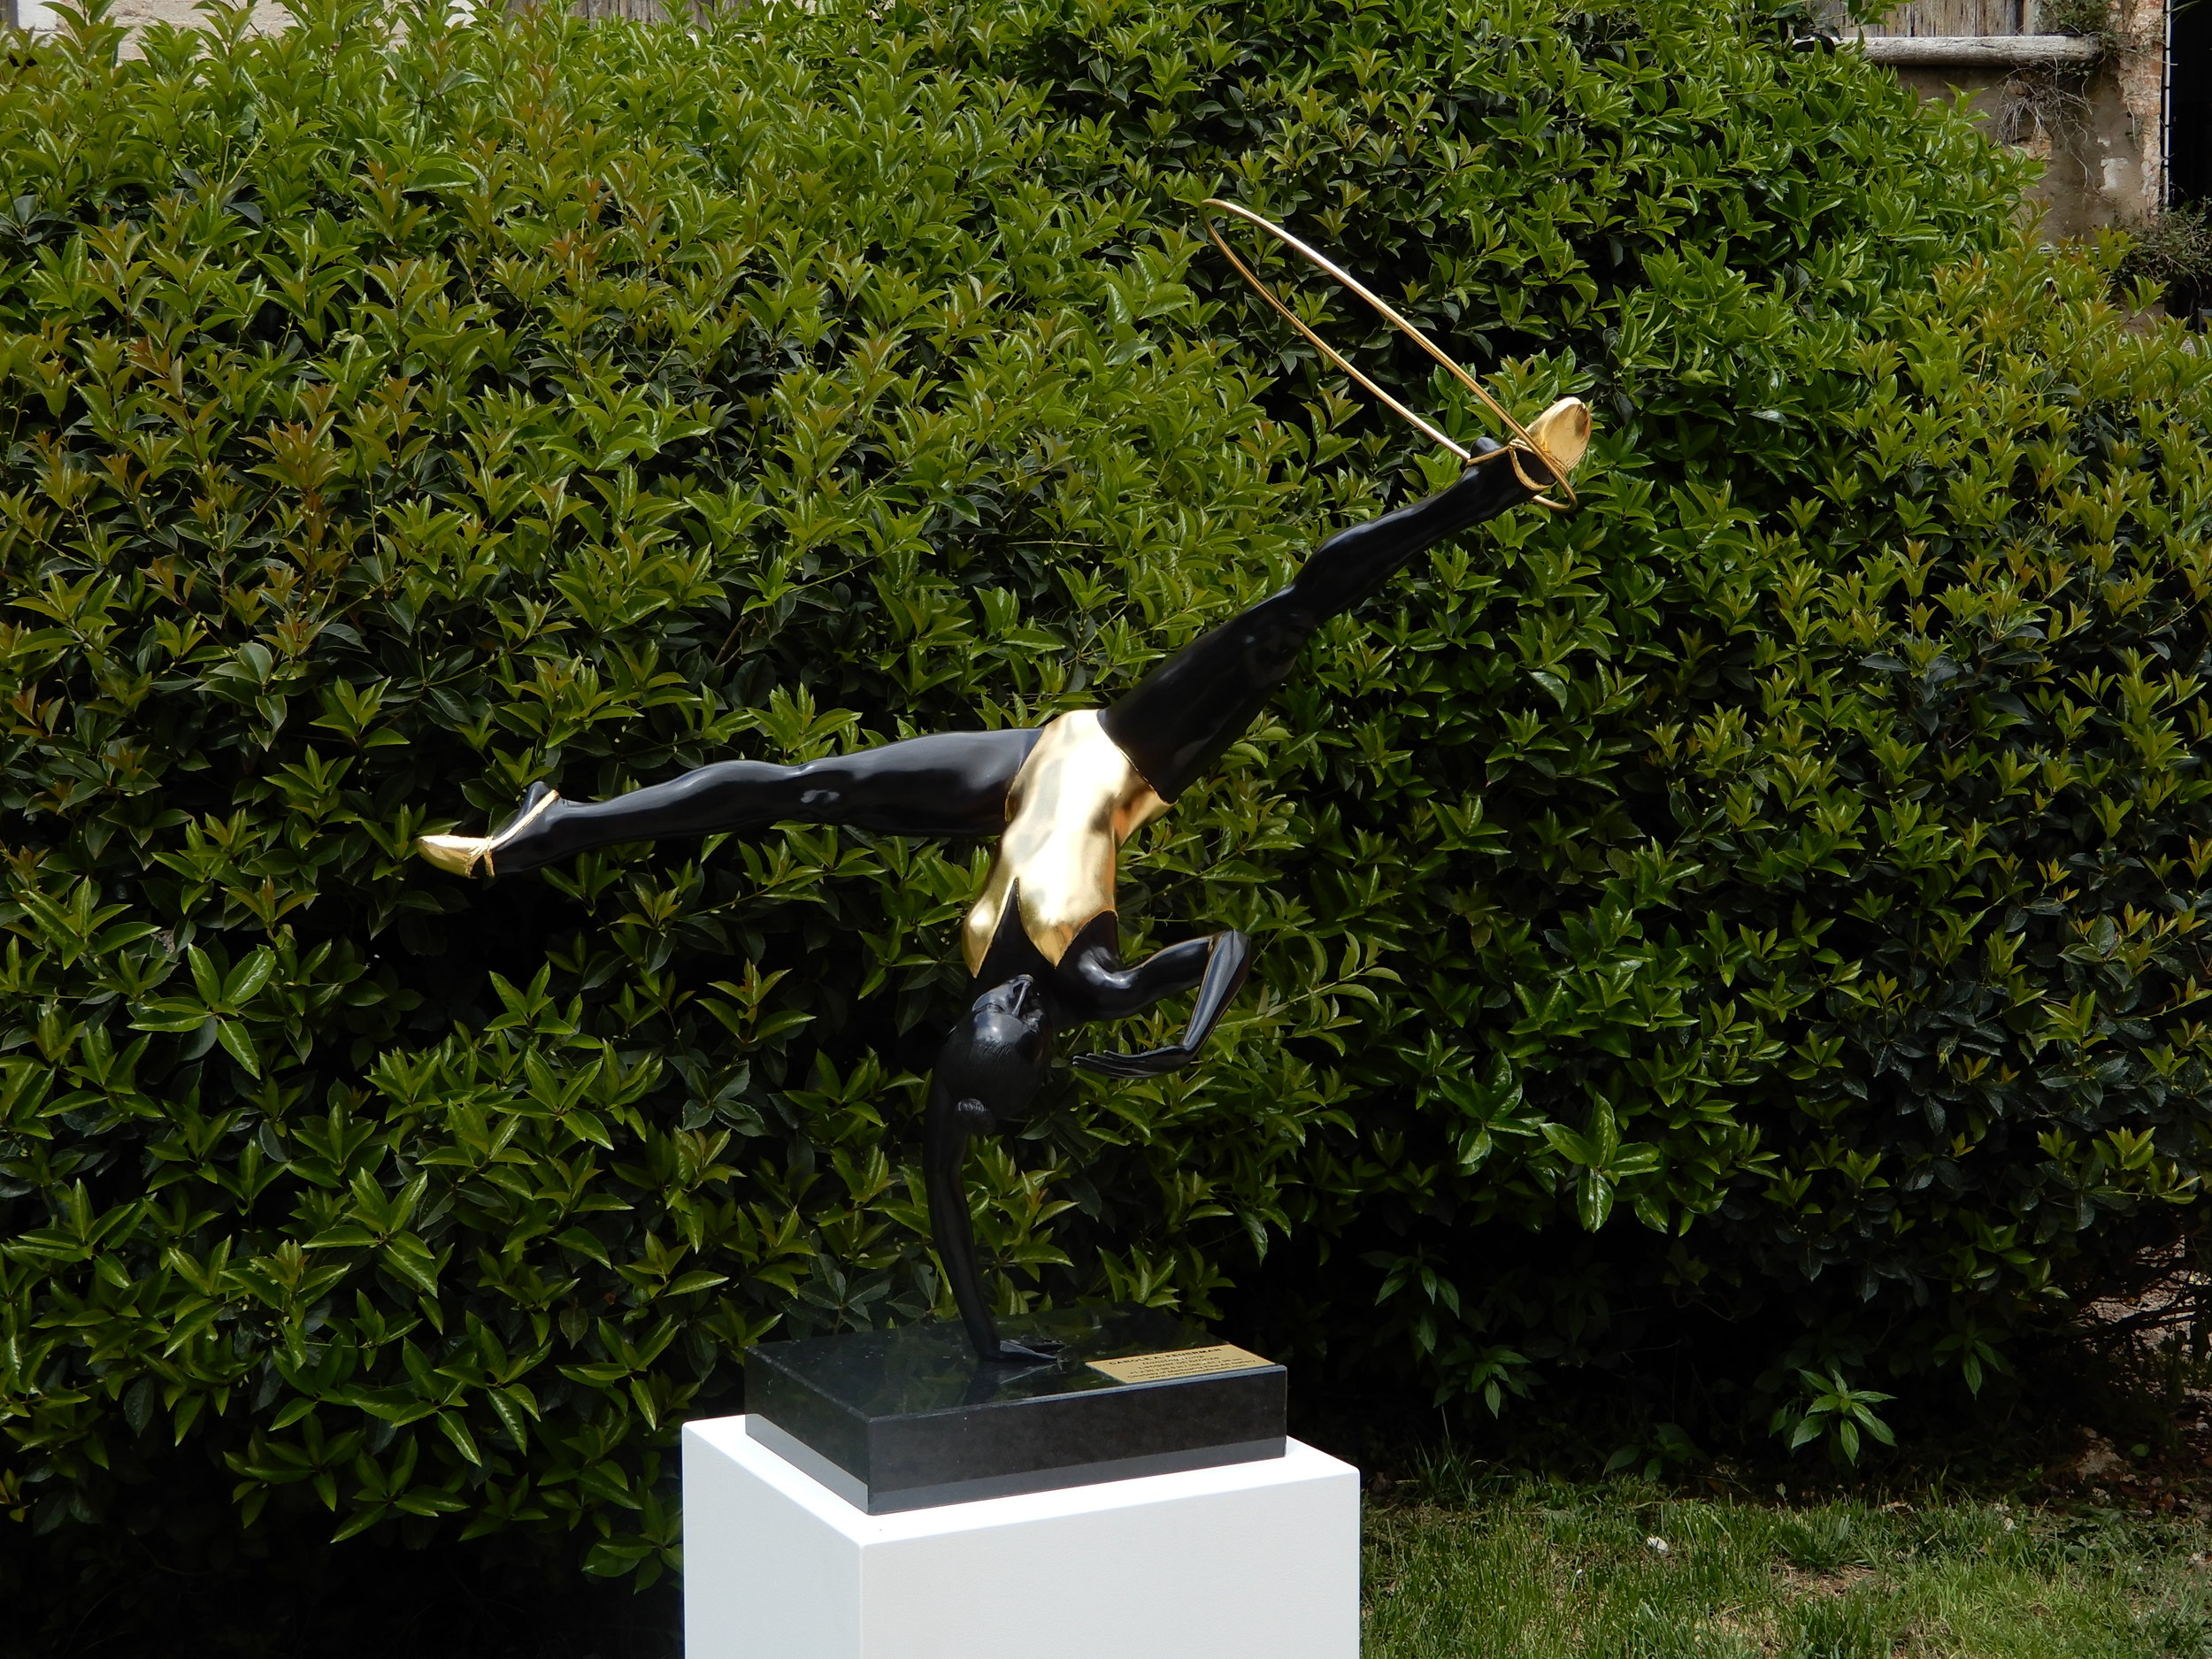 The Infinite Dance , 2015, Hand-Patinated Bronze with Stainless Steel, Dimensions (inches): 41 H x 20 W x 39 D